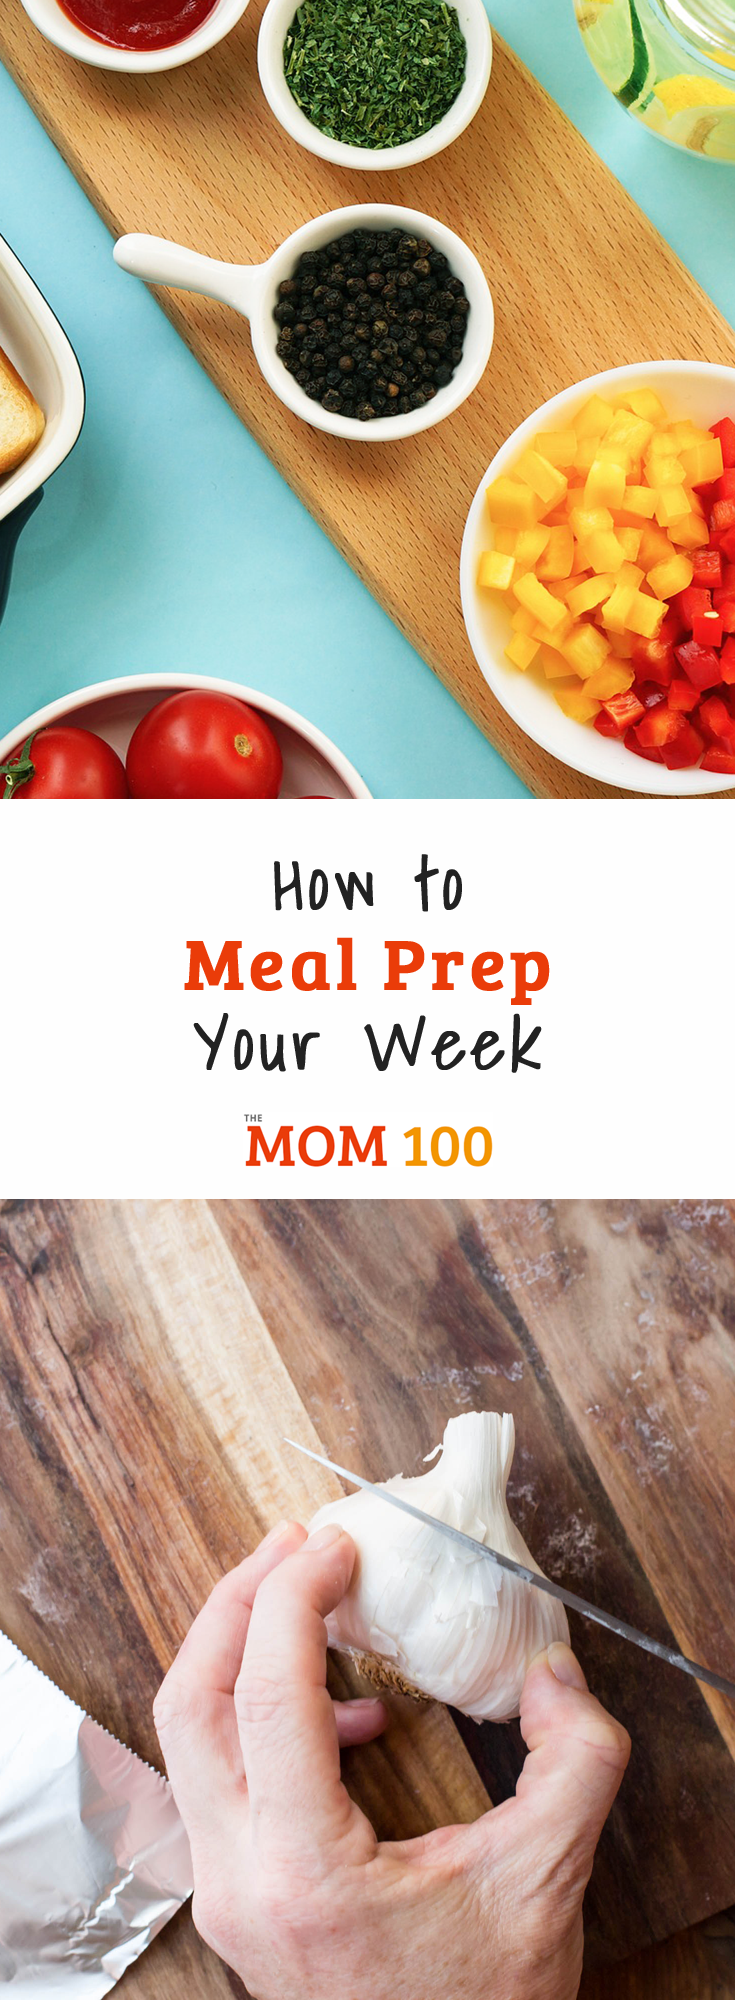 How to Meal Prep Your Week: How to get ahead of the week\'s cooking by prepping and storing a bunch of ingredients you likely will call into duty.  Prep like a boss!